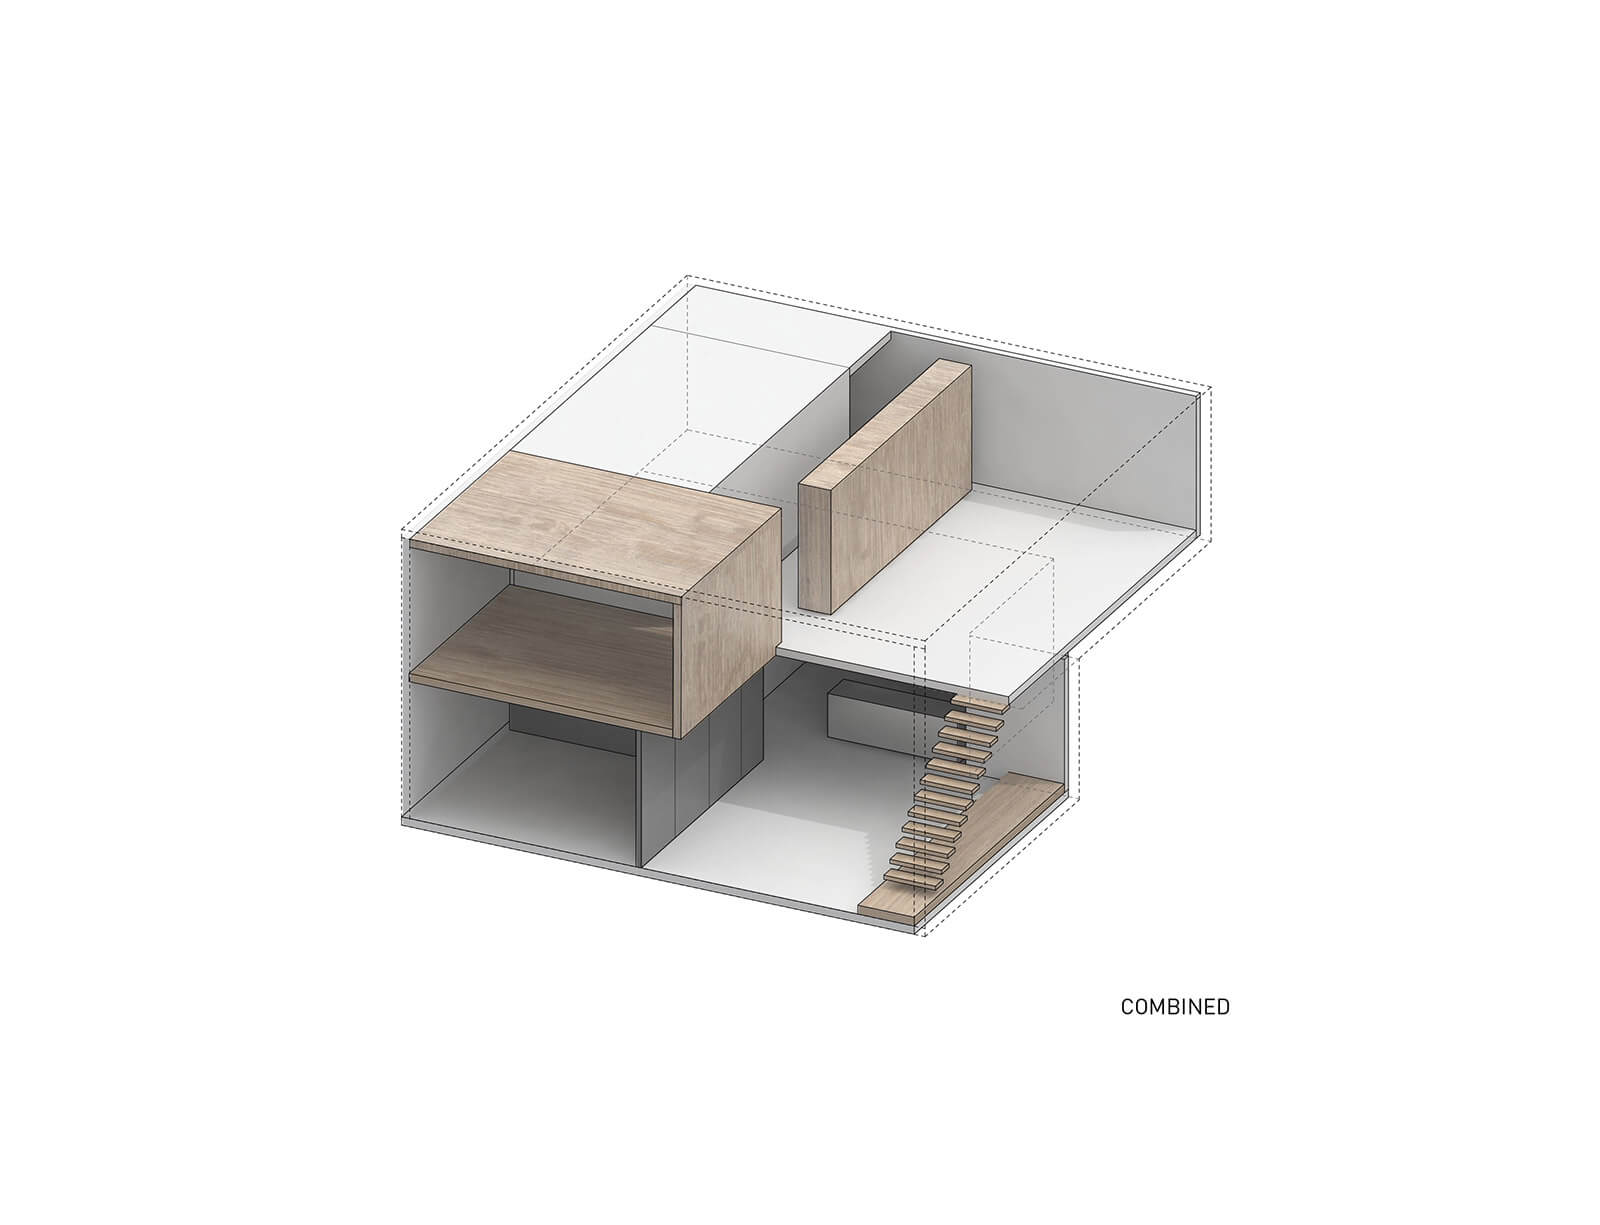 studio vara residential soma loft diagram material composition